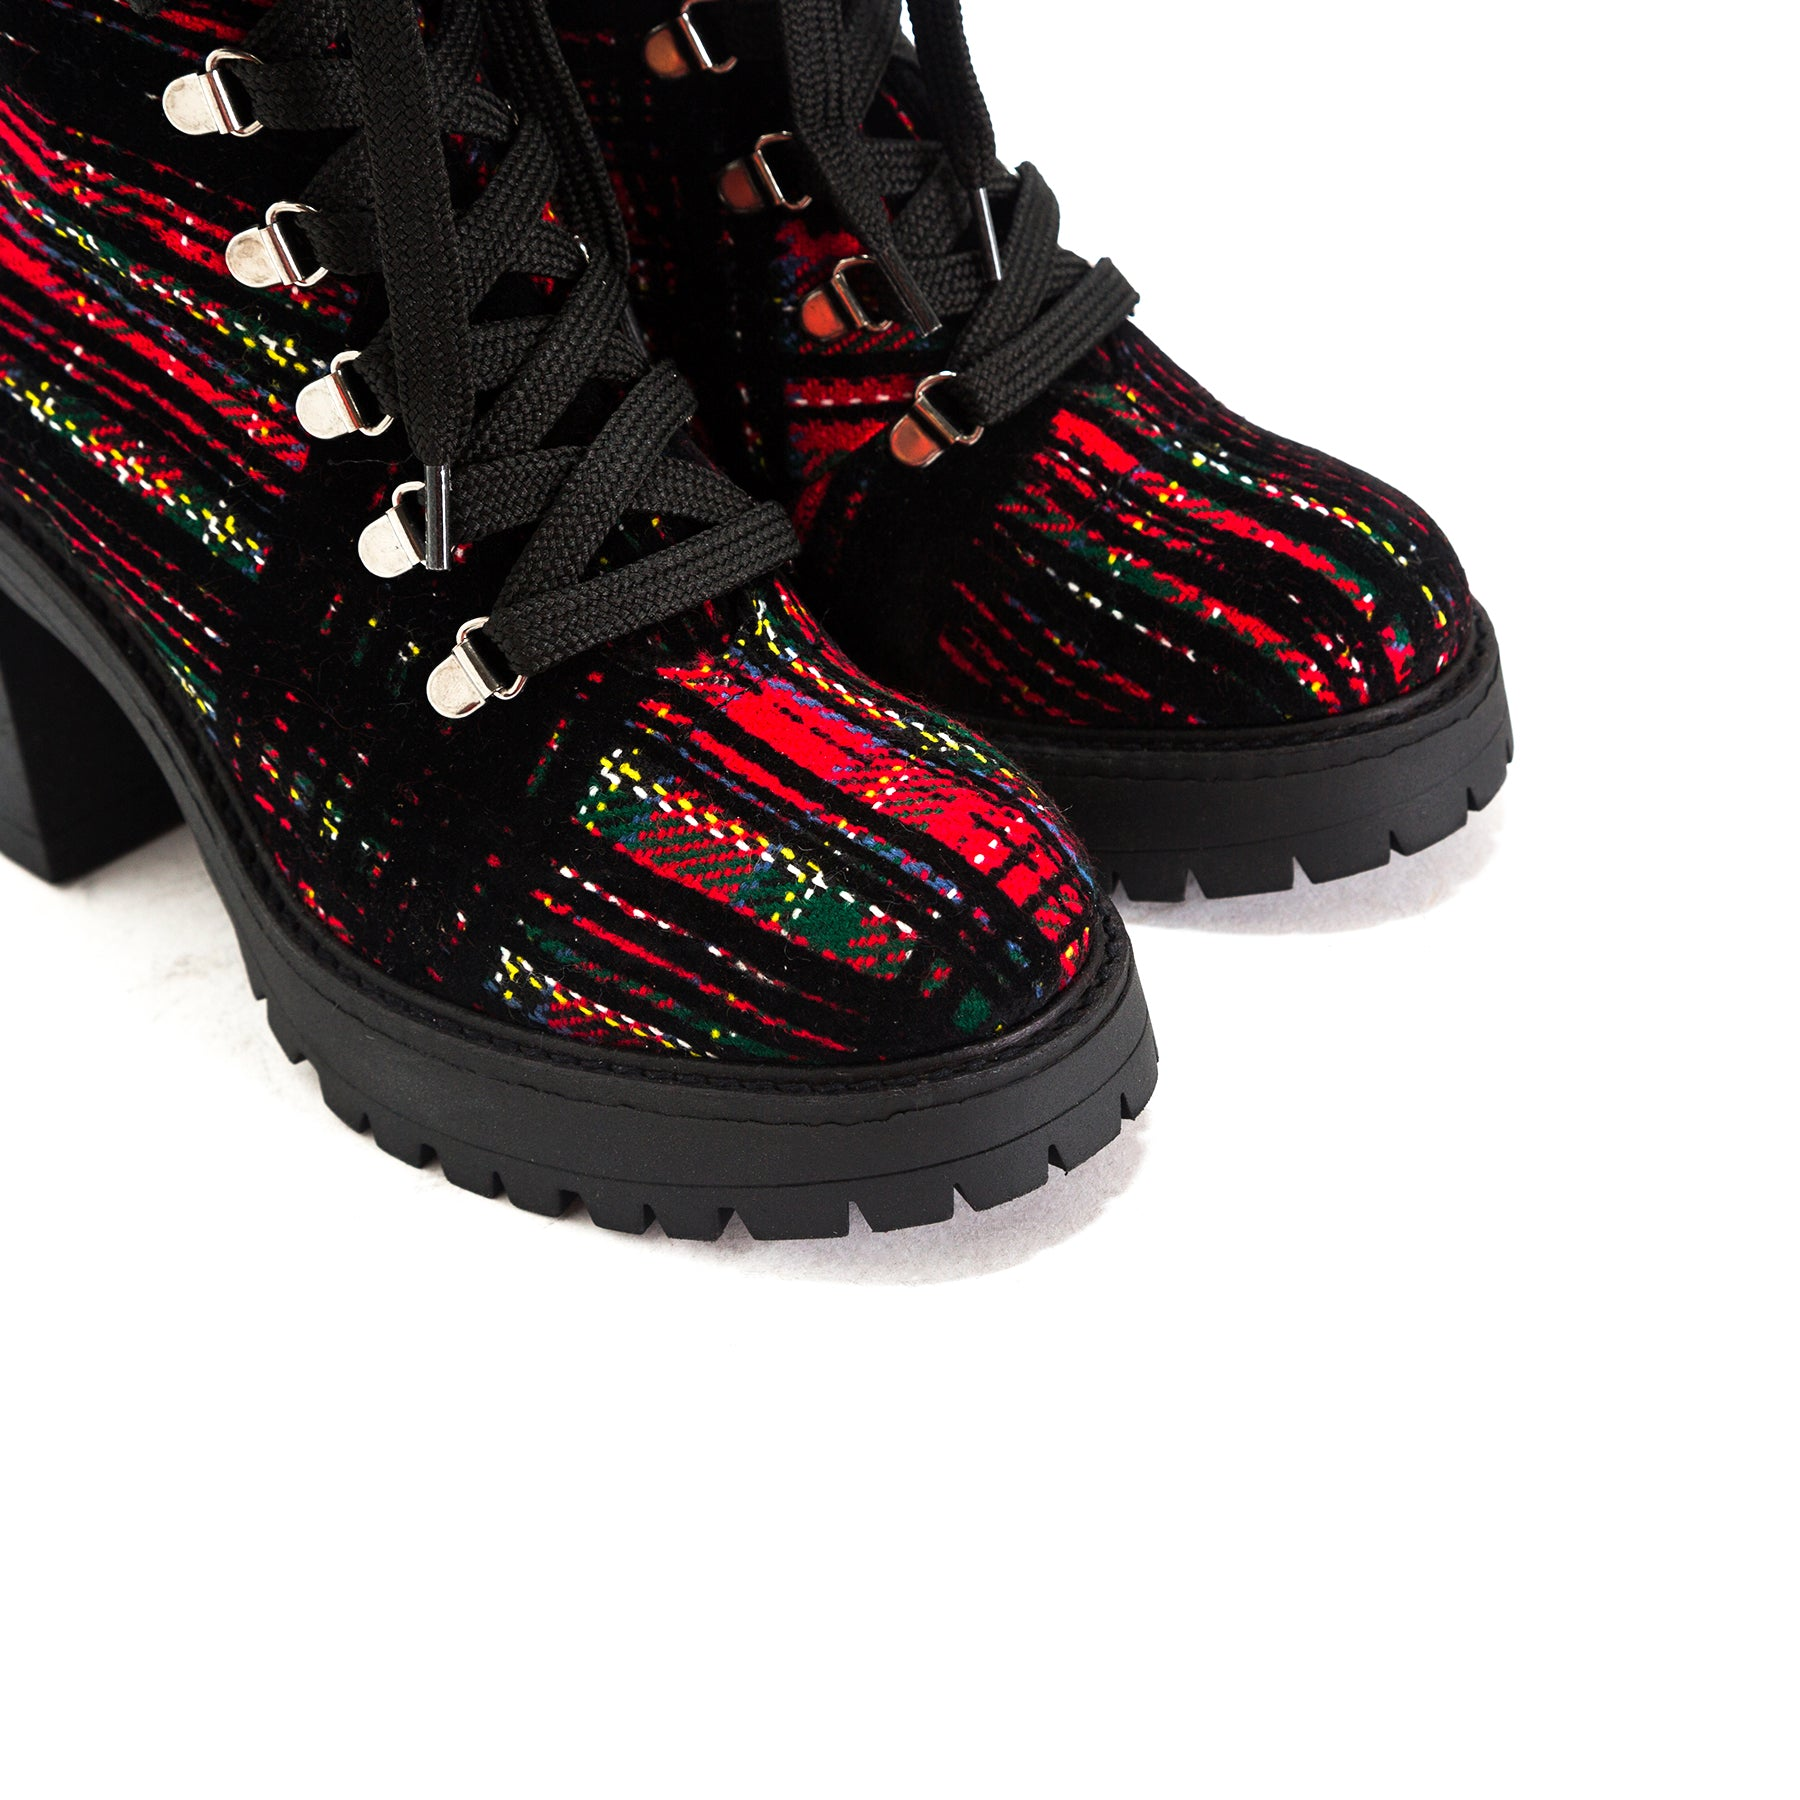 Sickla Red/Black Fabric Platforms